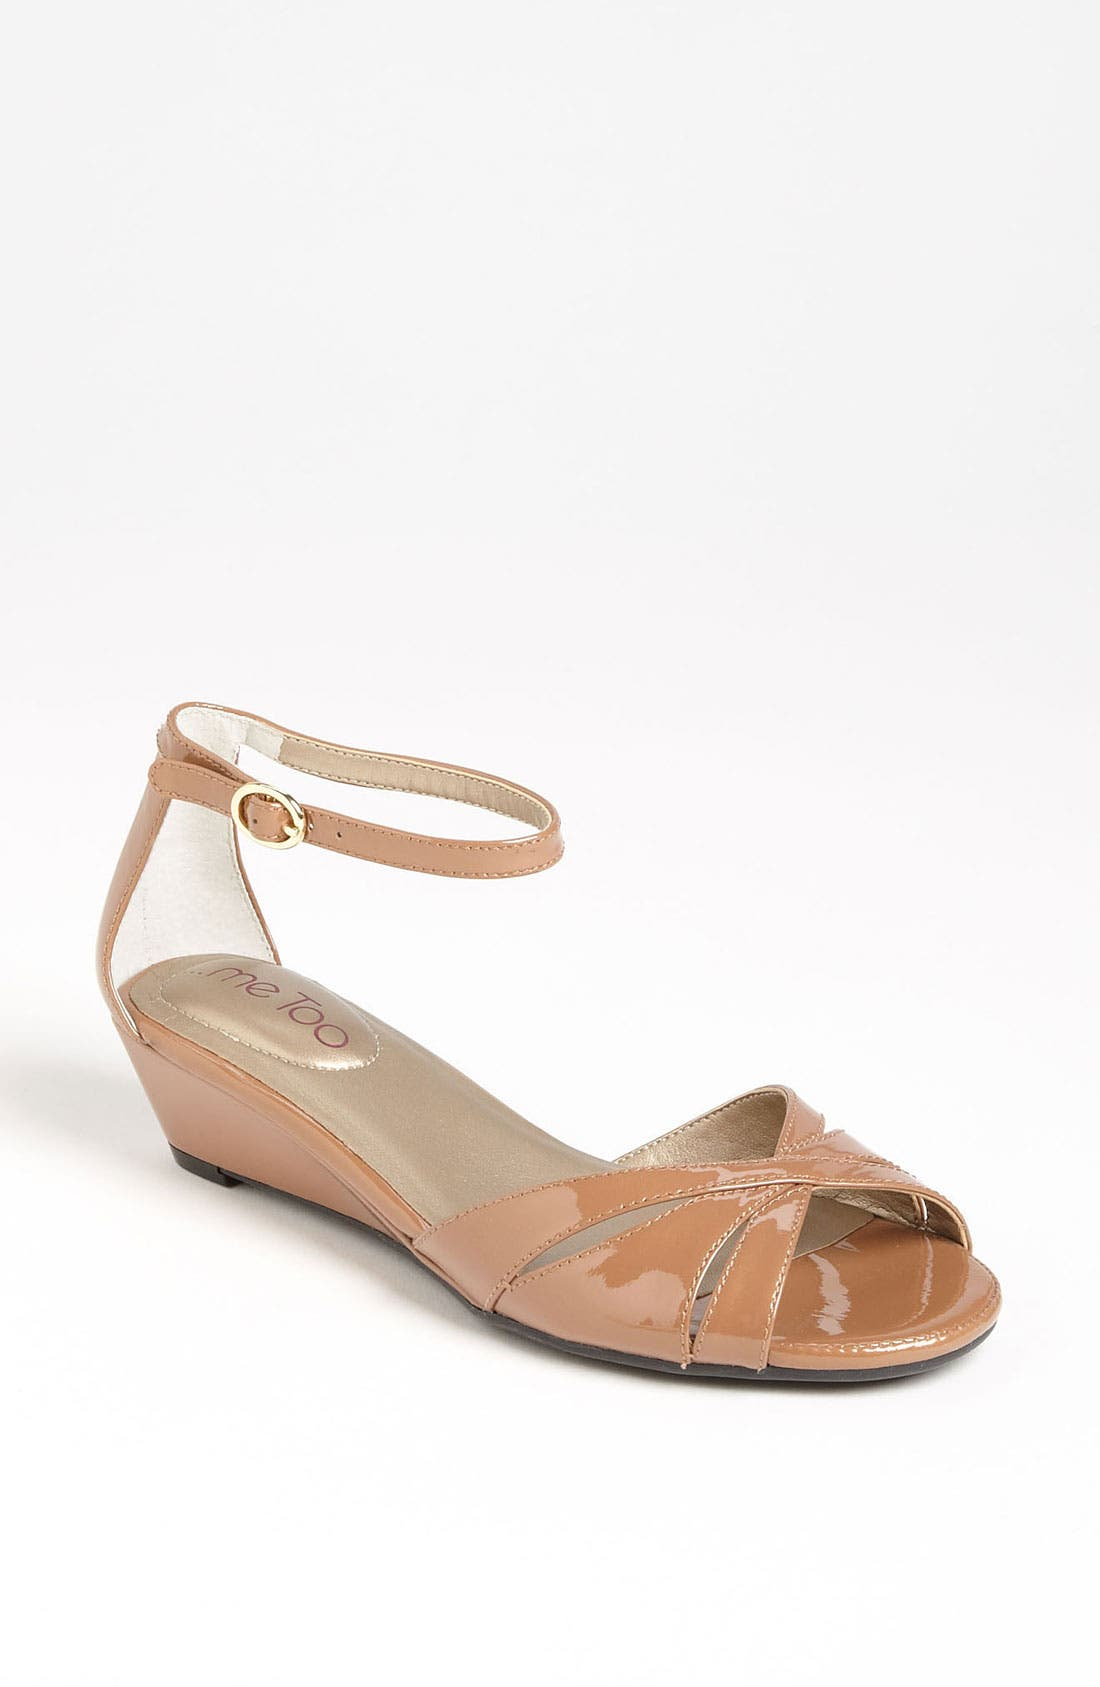 Main Image - Me Too 'Sarina' Wedge Sandal